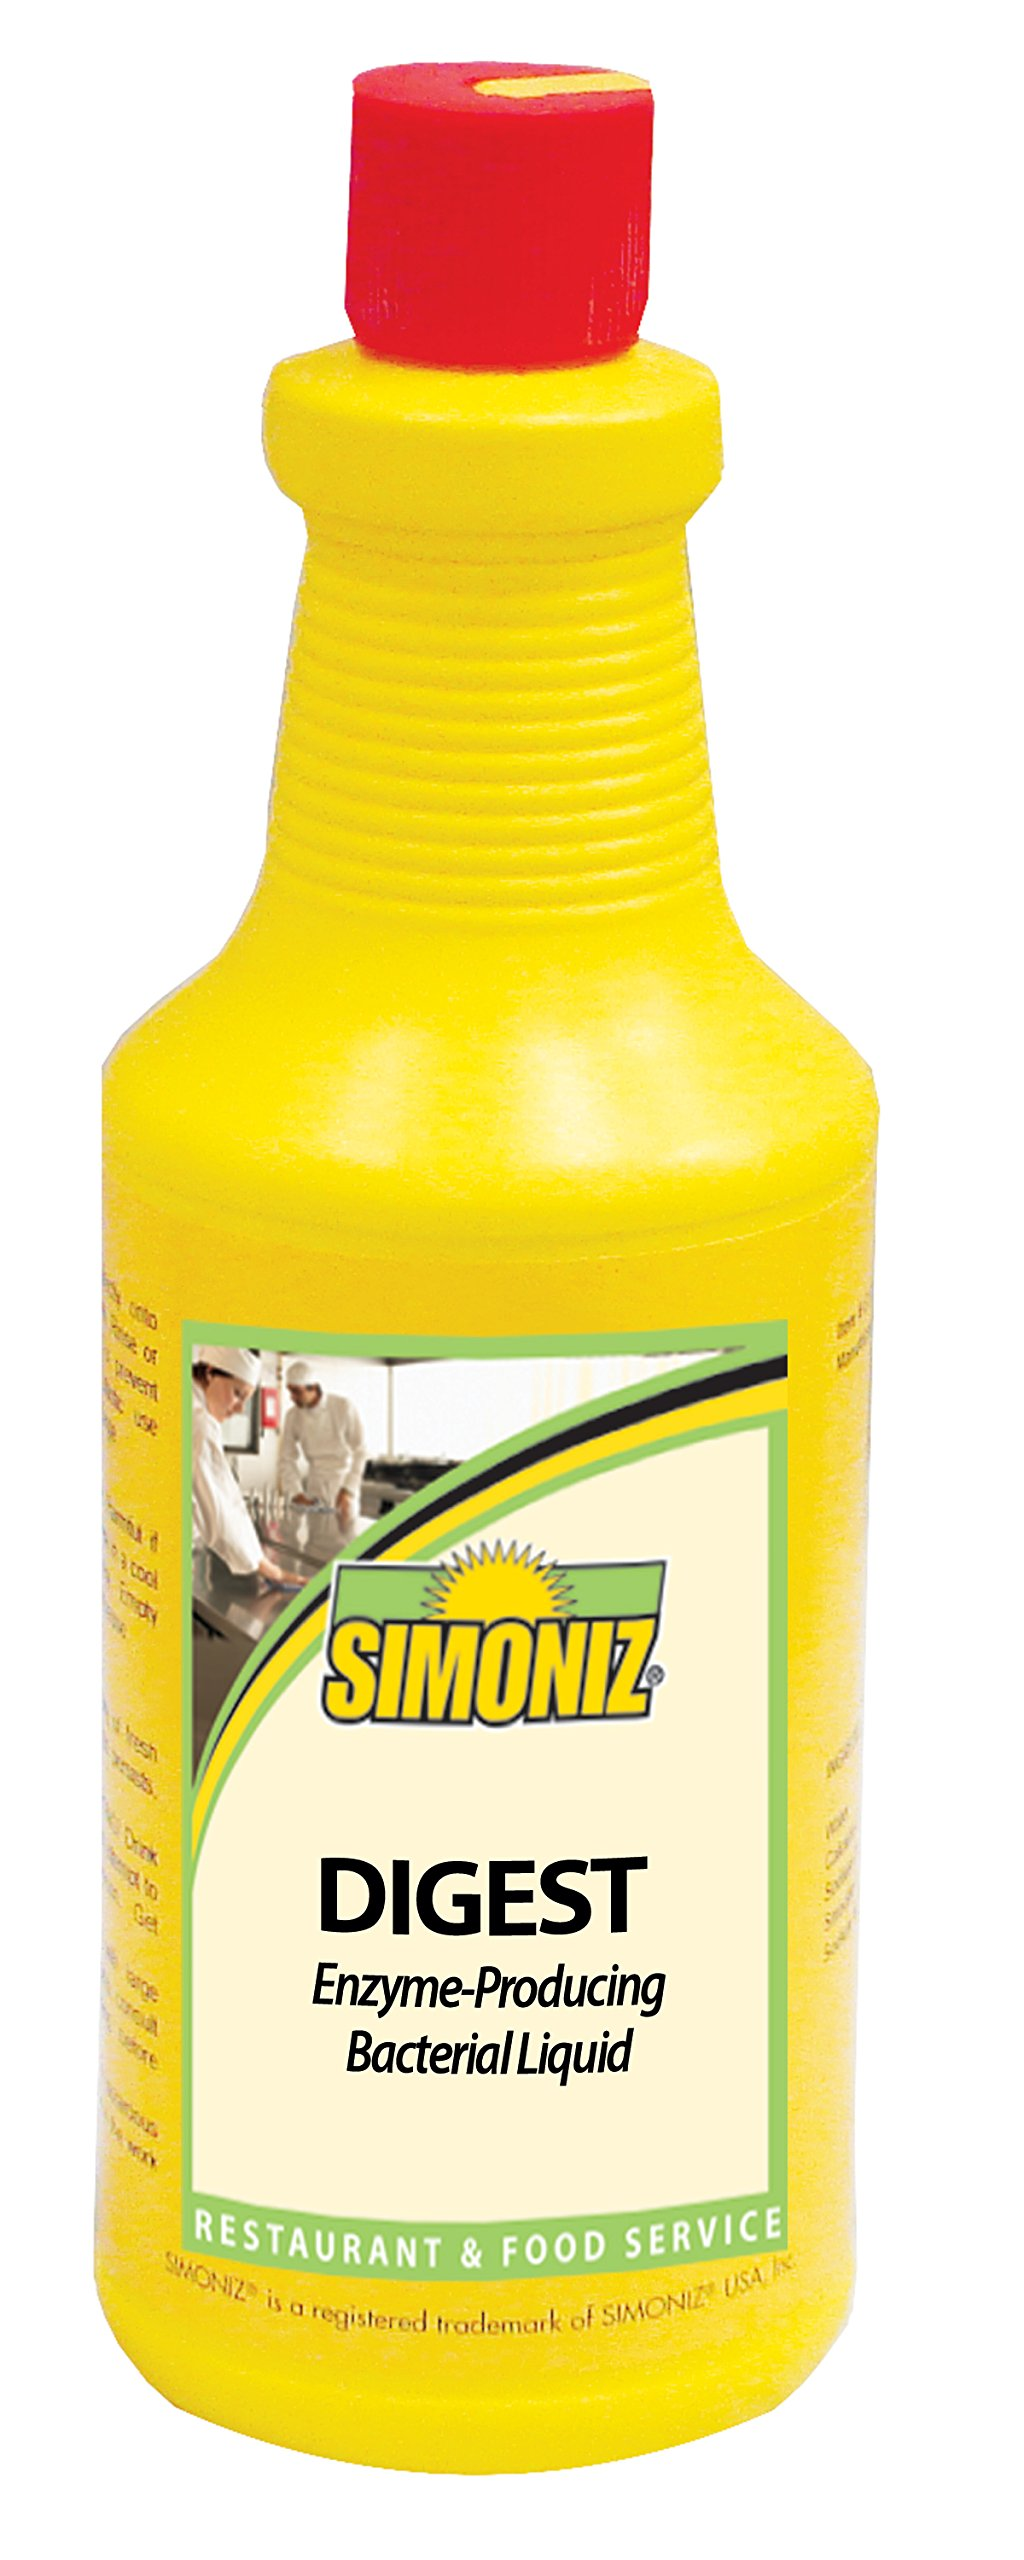 Simoniz D0860012 Digest Enzyme-Producing Drain Cleaner, 32 oz Bottles per Case (Pack of 12)